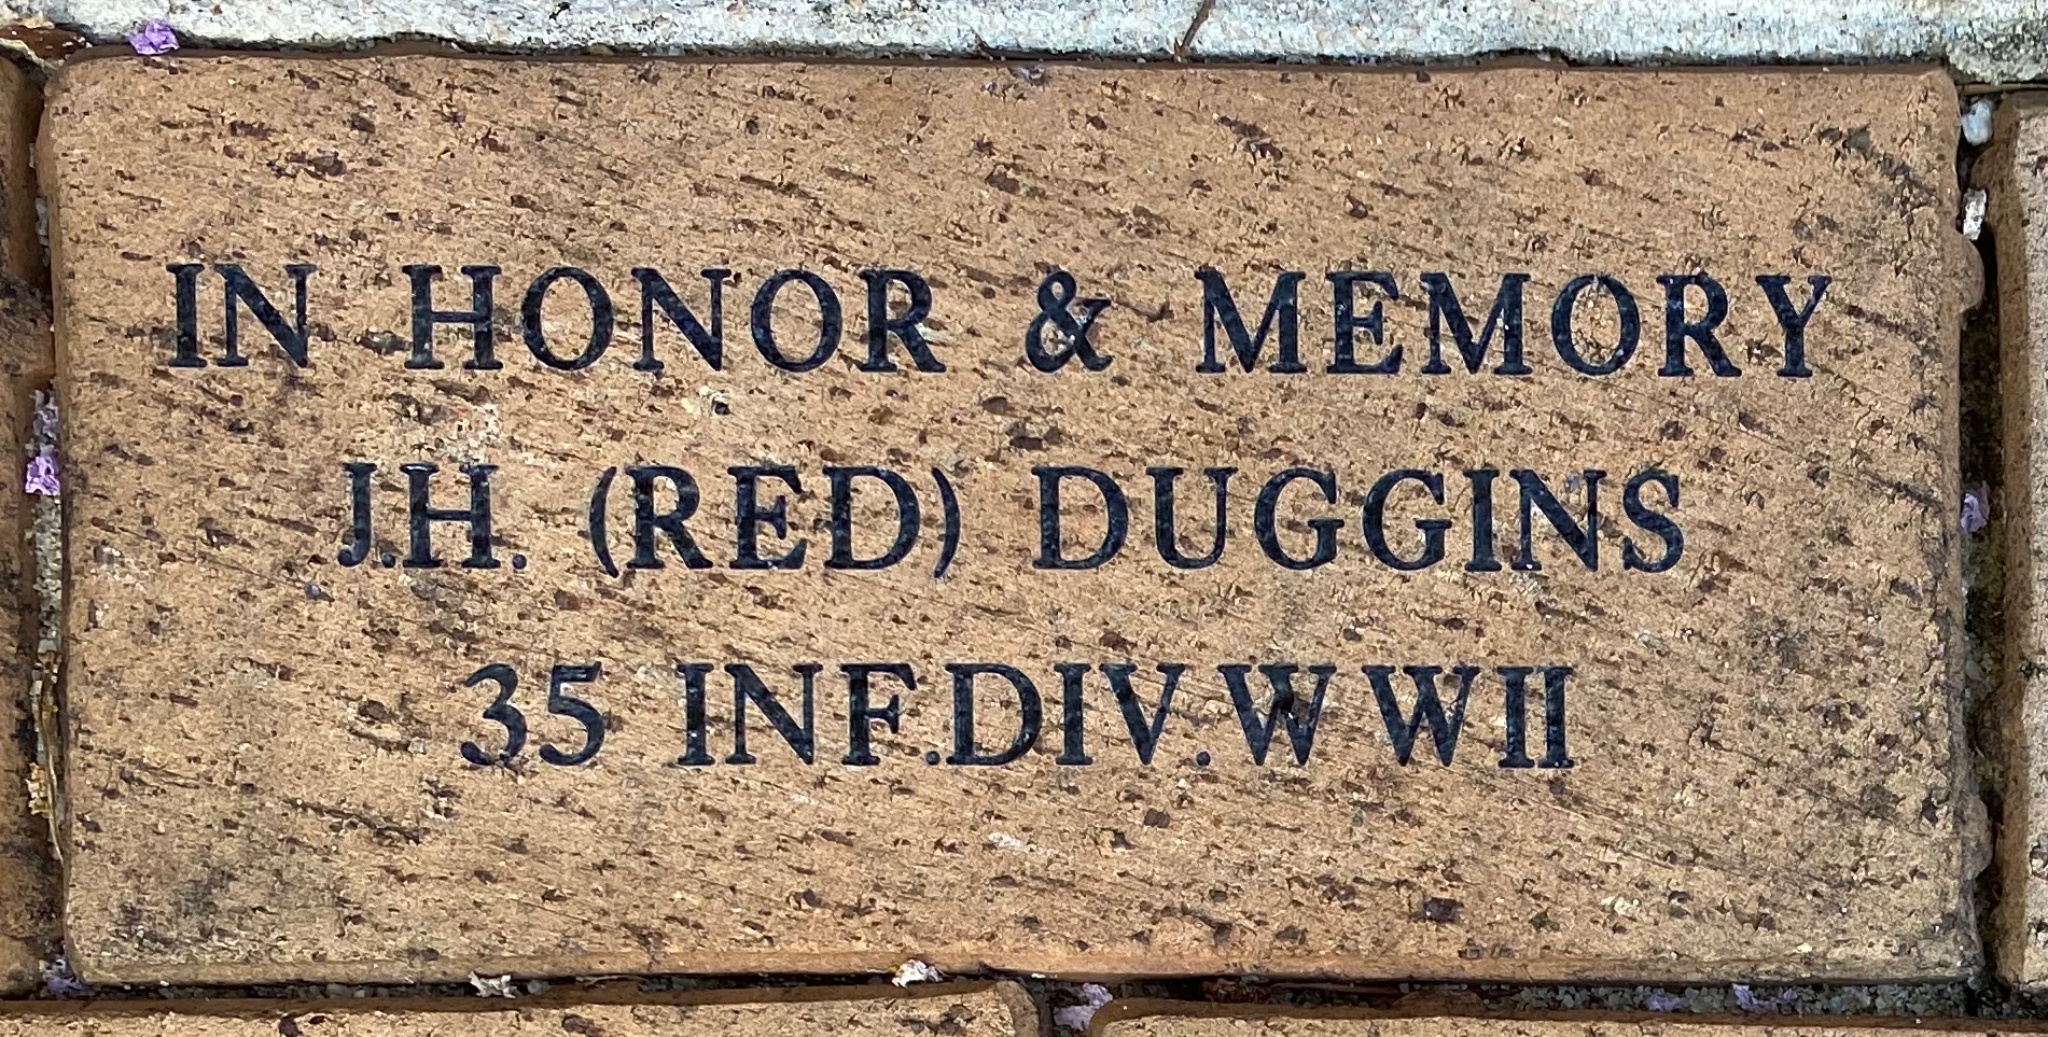 IN HONOR & MEMORY J.H.(RED) DUGGINS 35 INF.DIV WWII